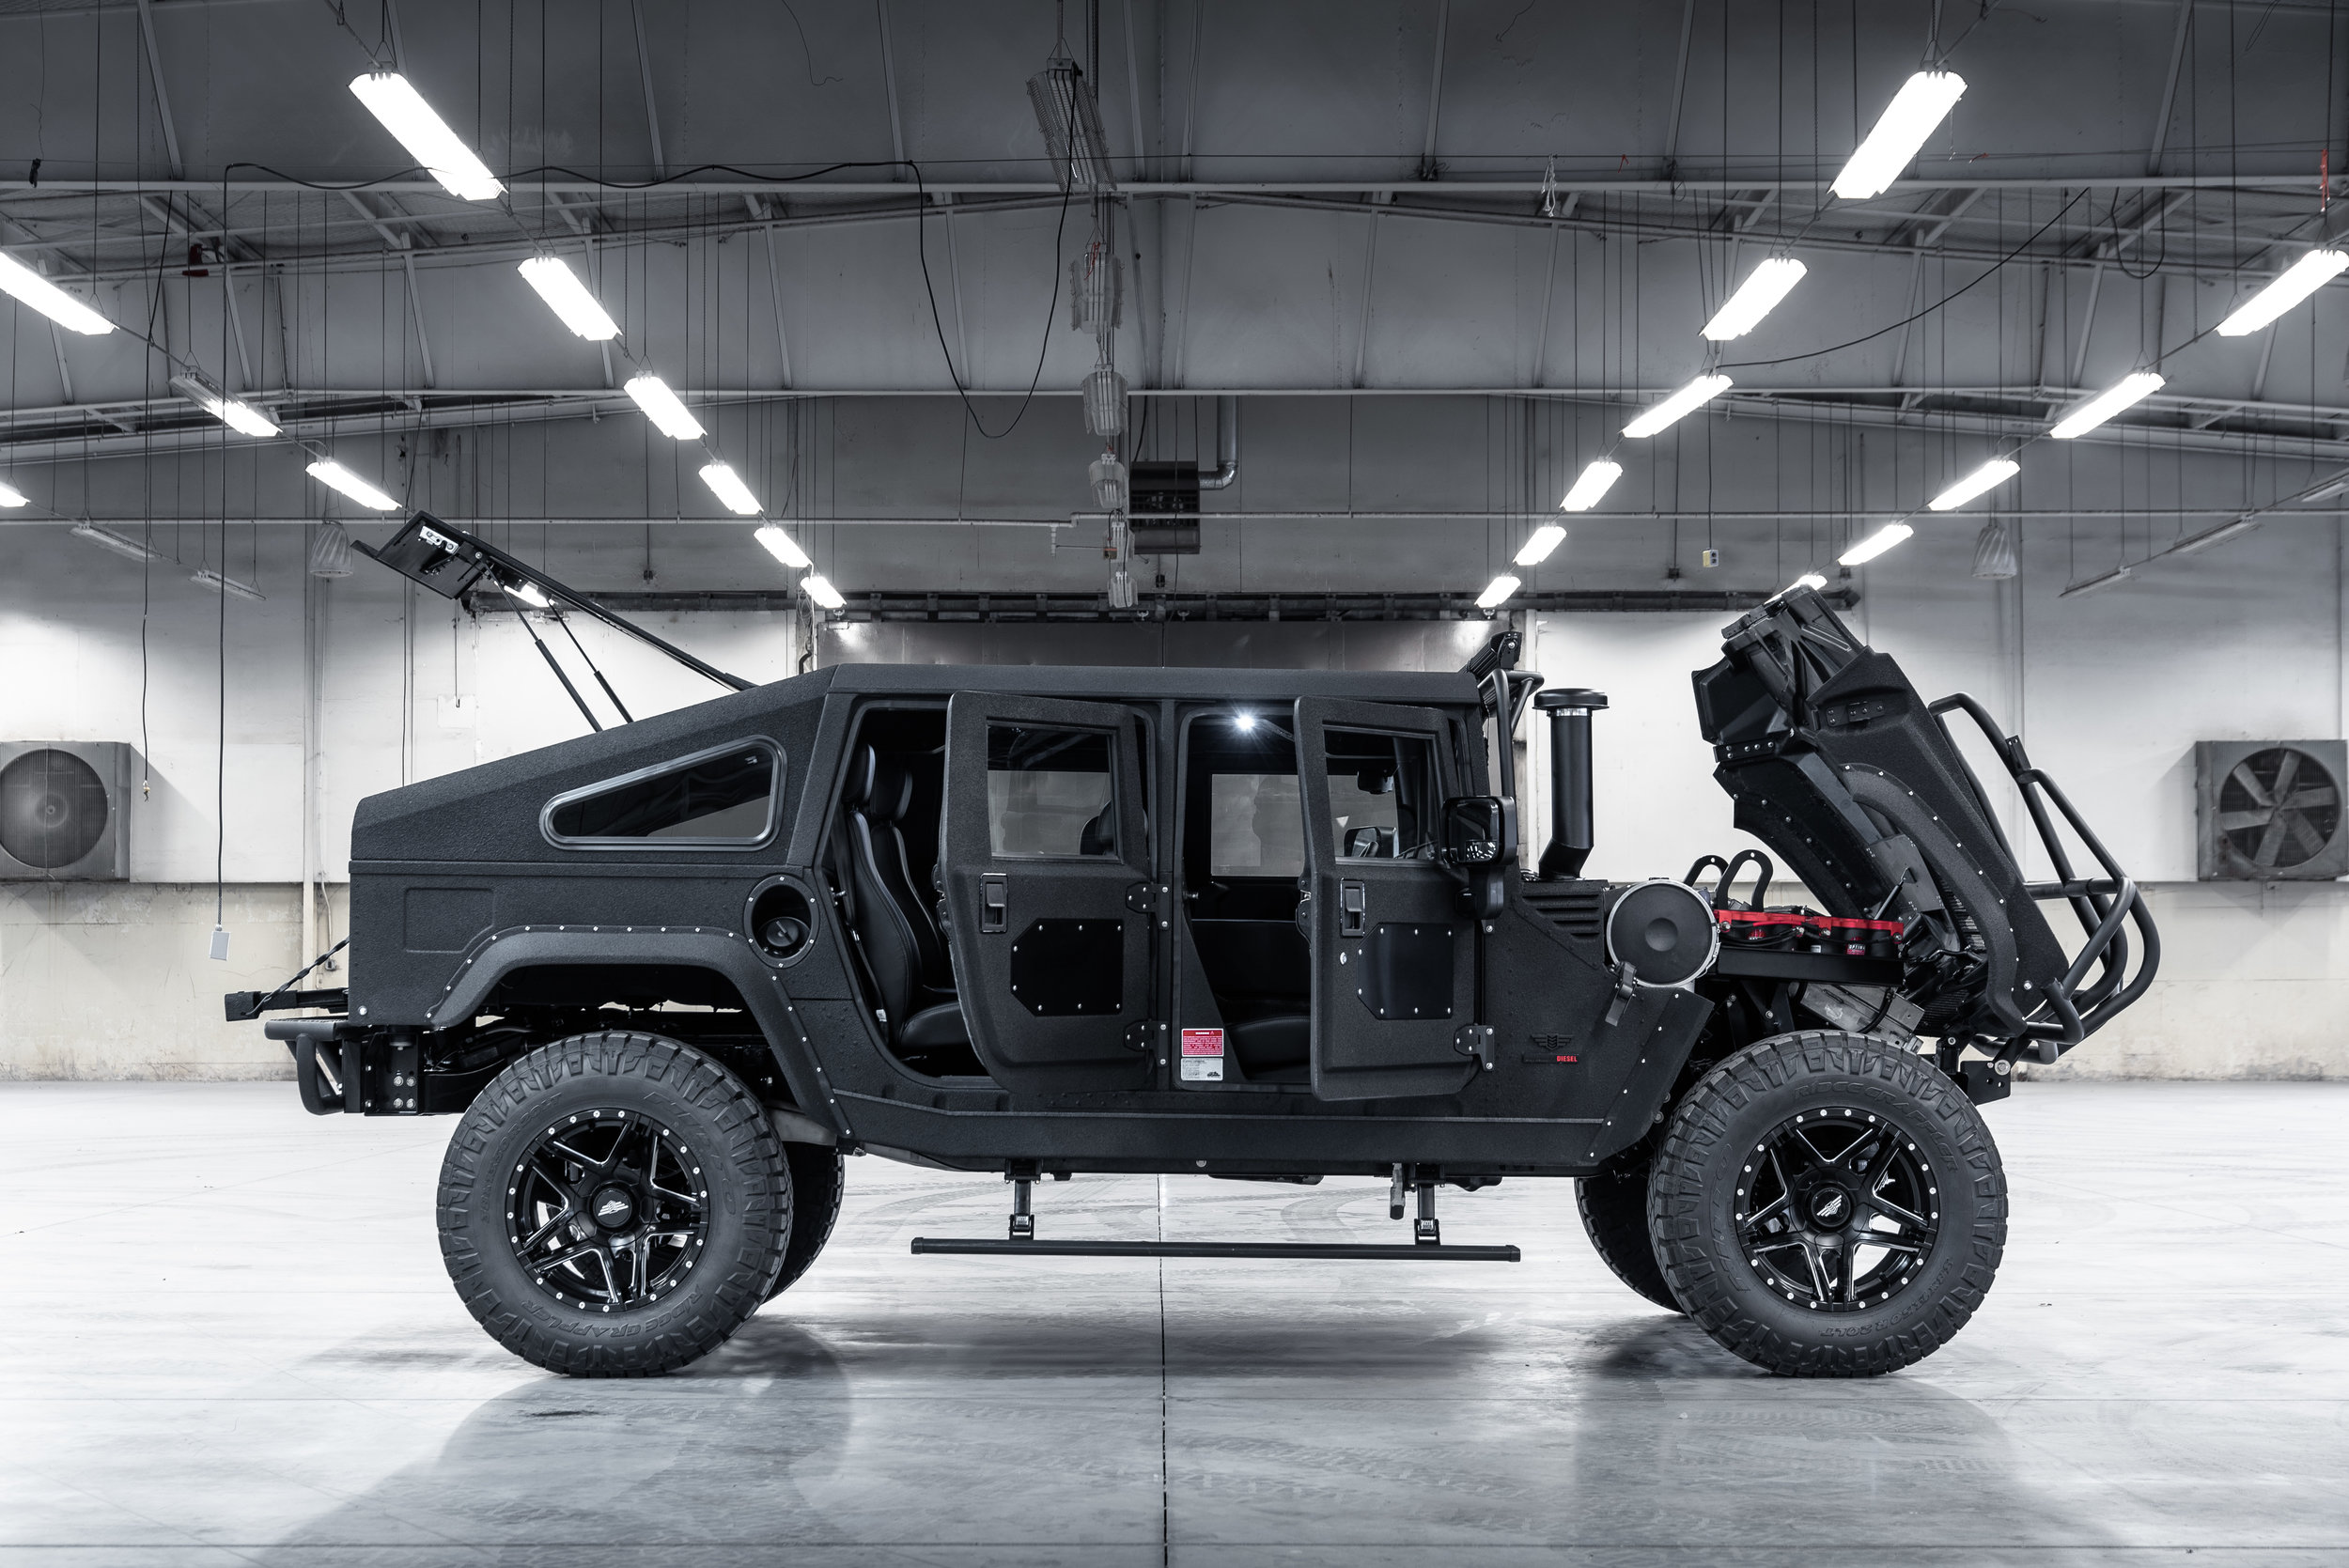 Re-Envisioned. - We took the iconic Hummer H1 and re-envisioned what it could be.